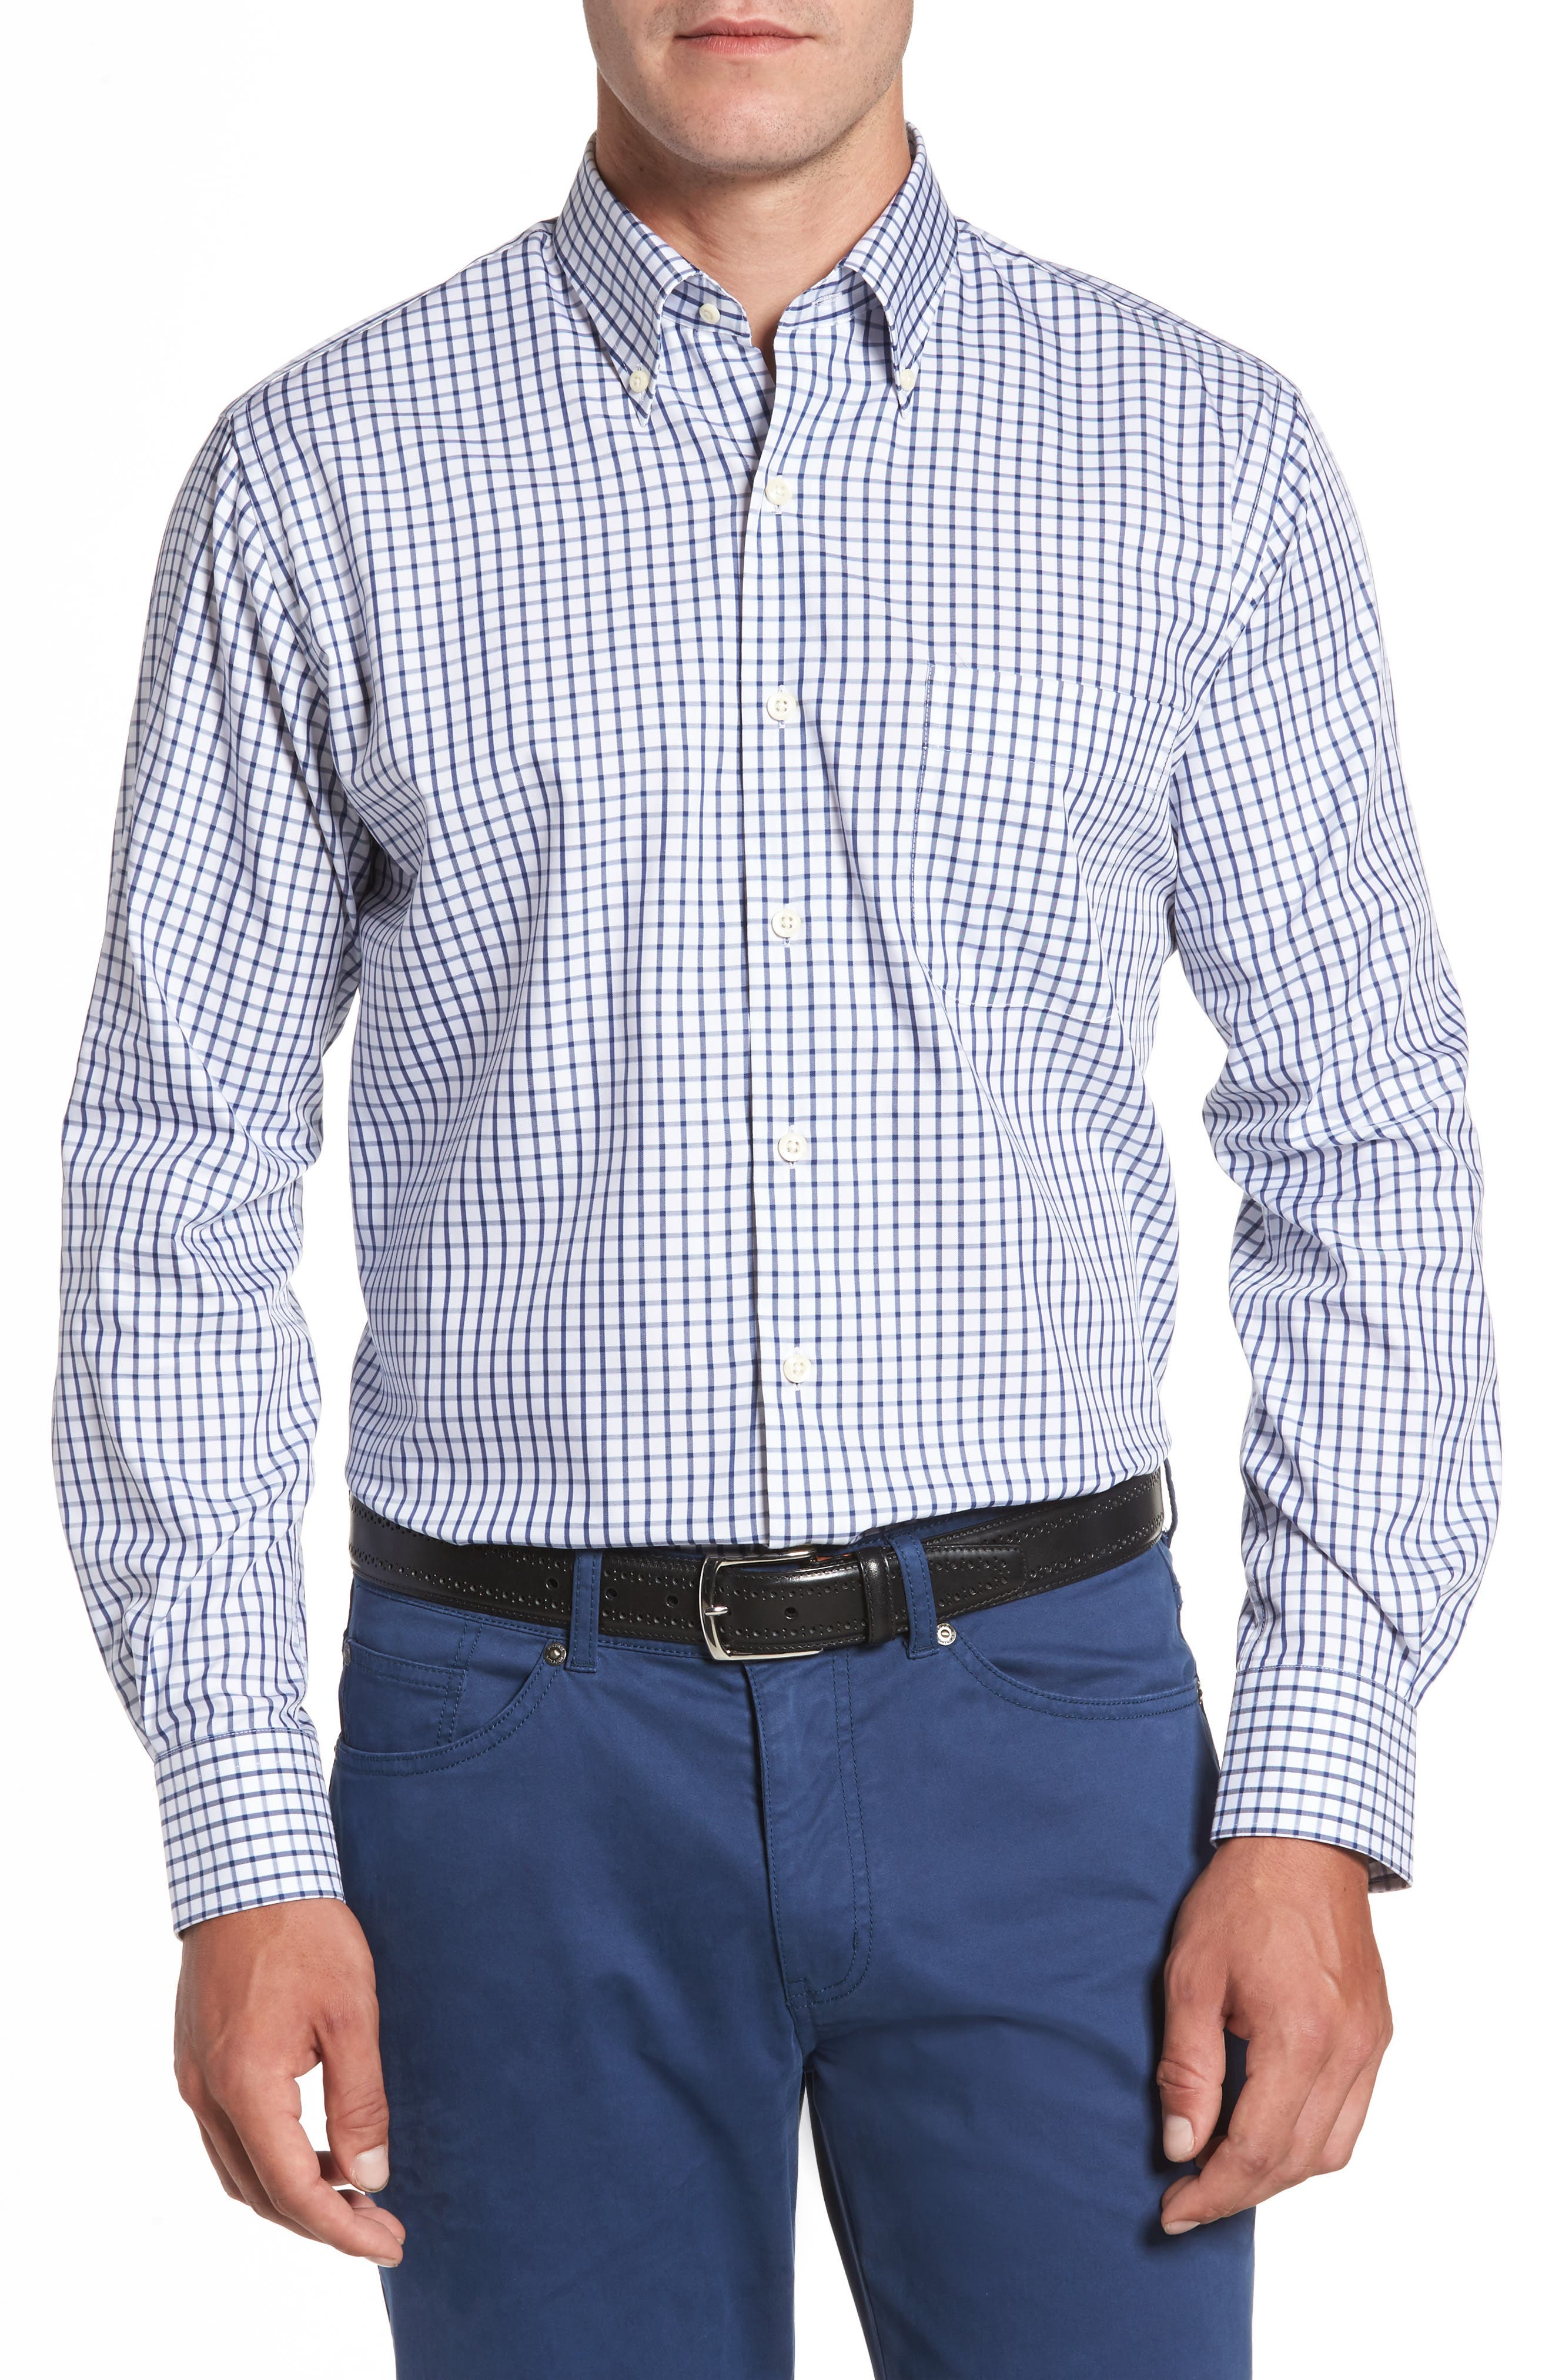 Crown Soft Nevada Tattersall Sport Shirt,                         Main,                         color, 400